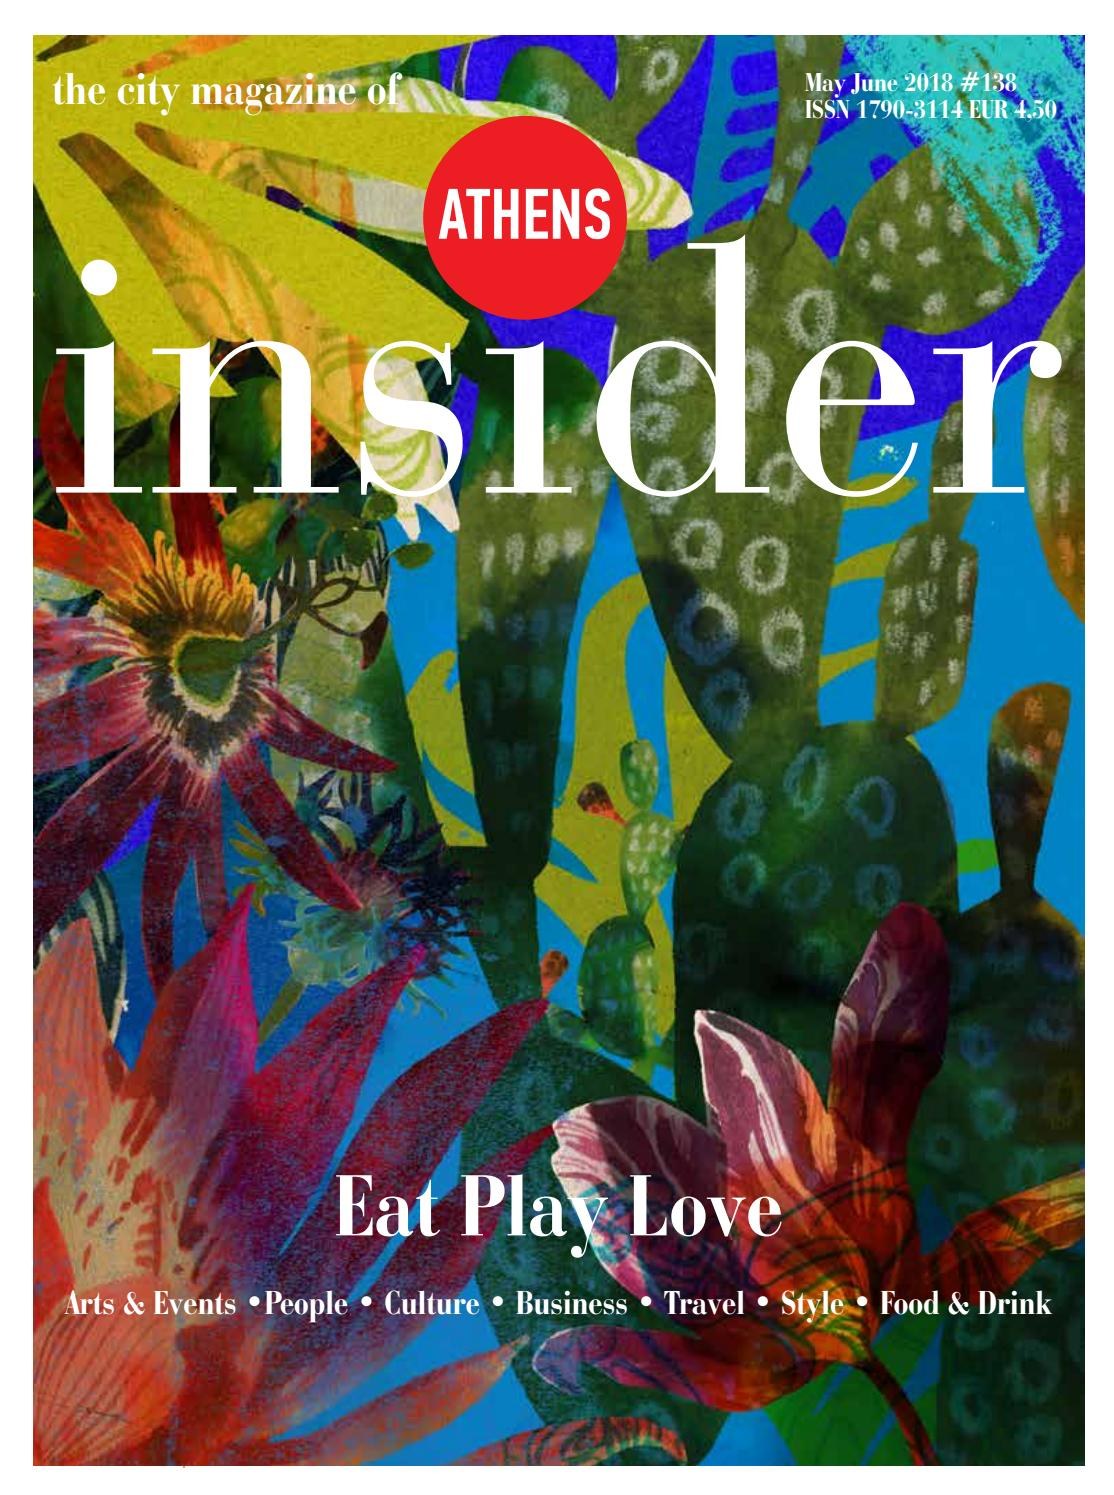 f334d7b6cd4 Athens Insider Spring 2018 no 138 issuu by Insider Publications - issuu